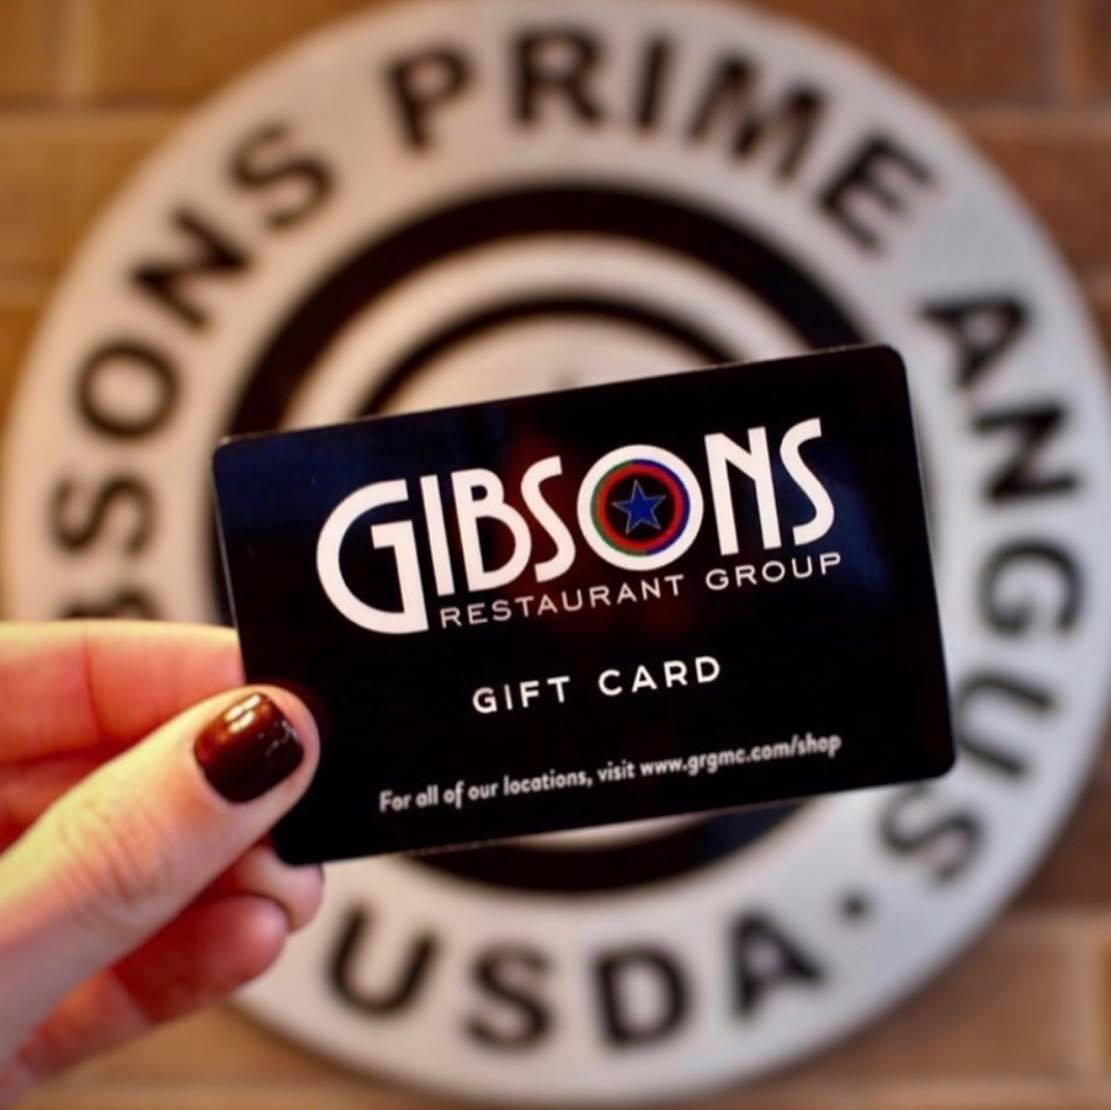 Image of a hand holding a Gibsons gift card